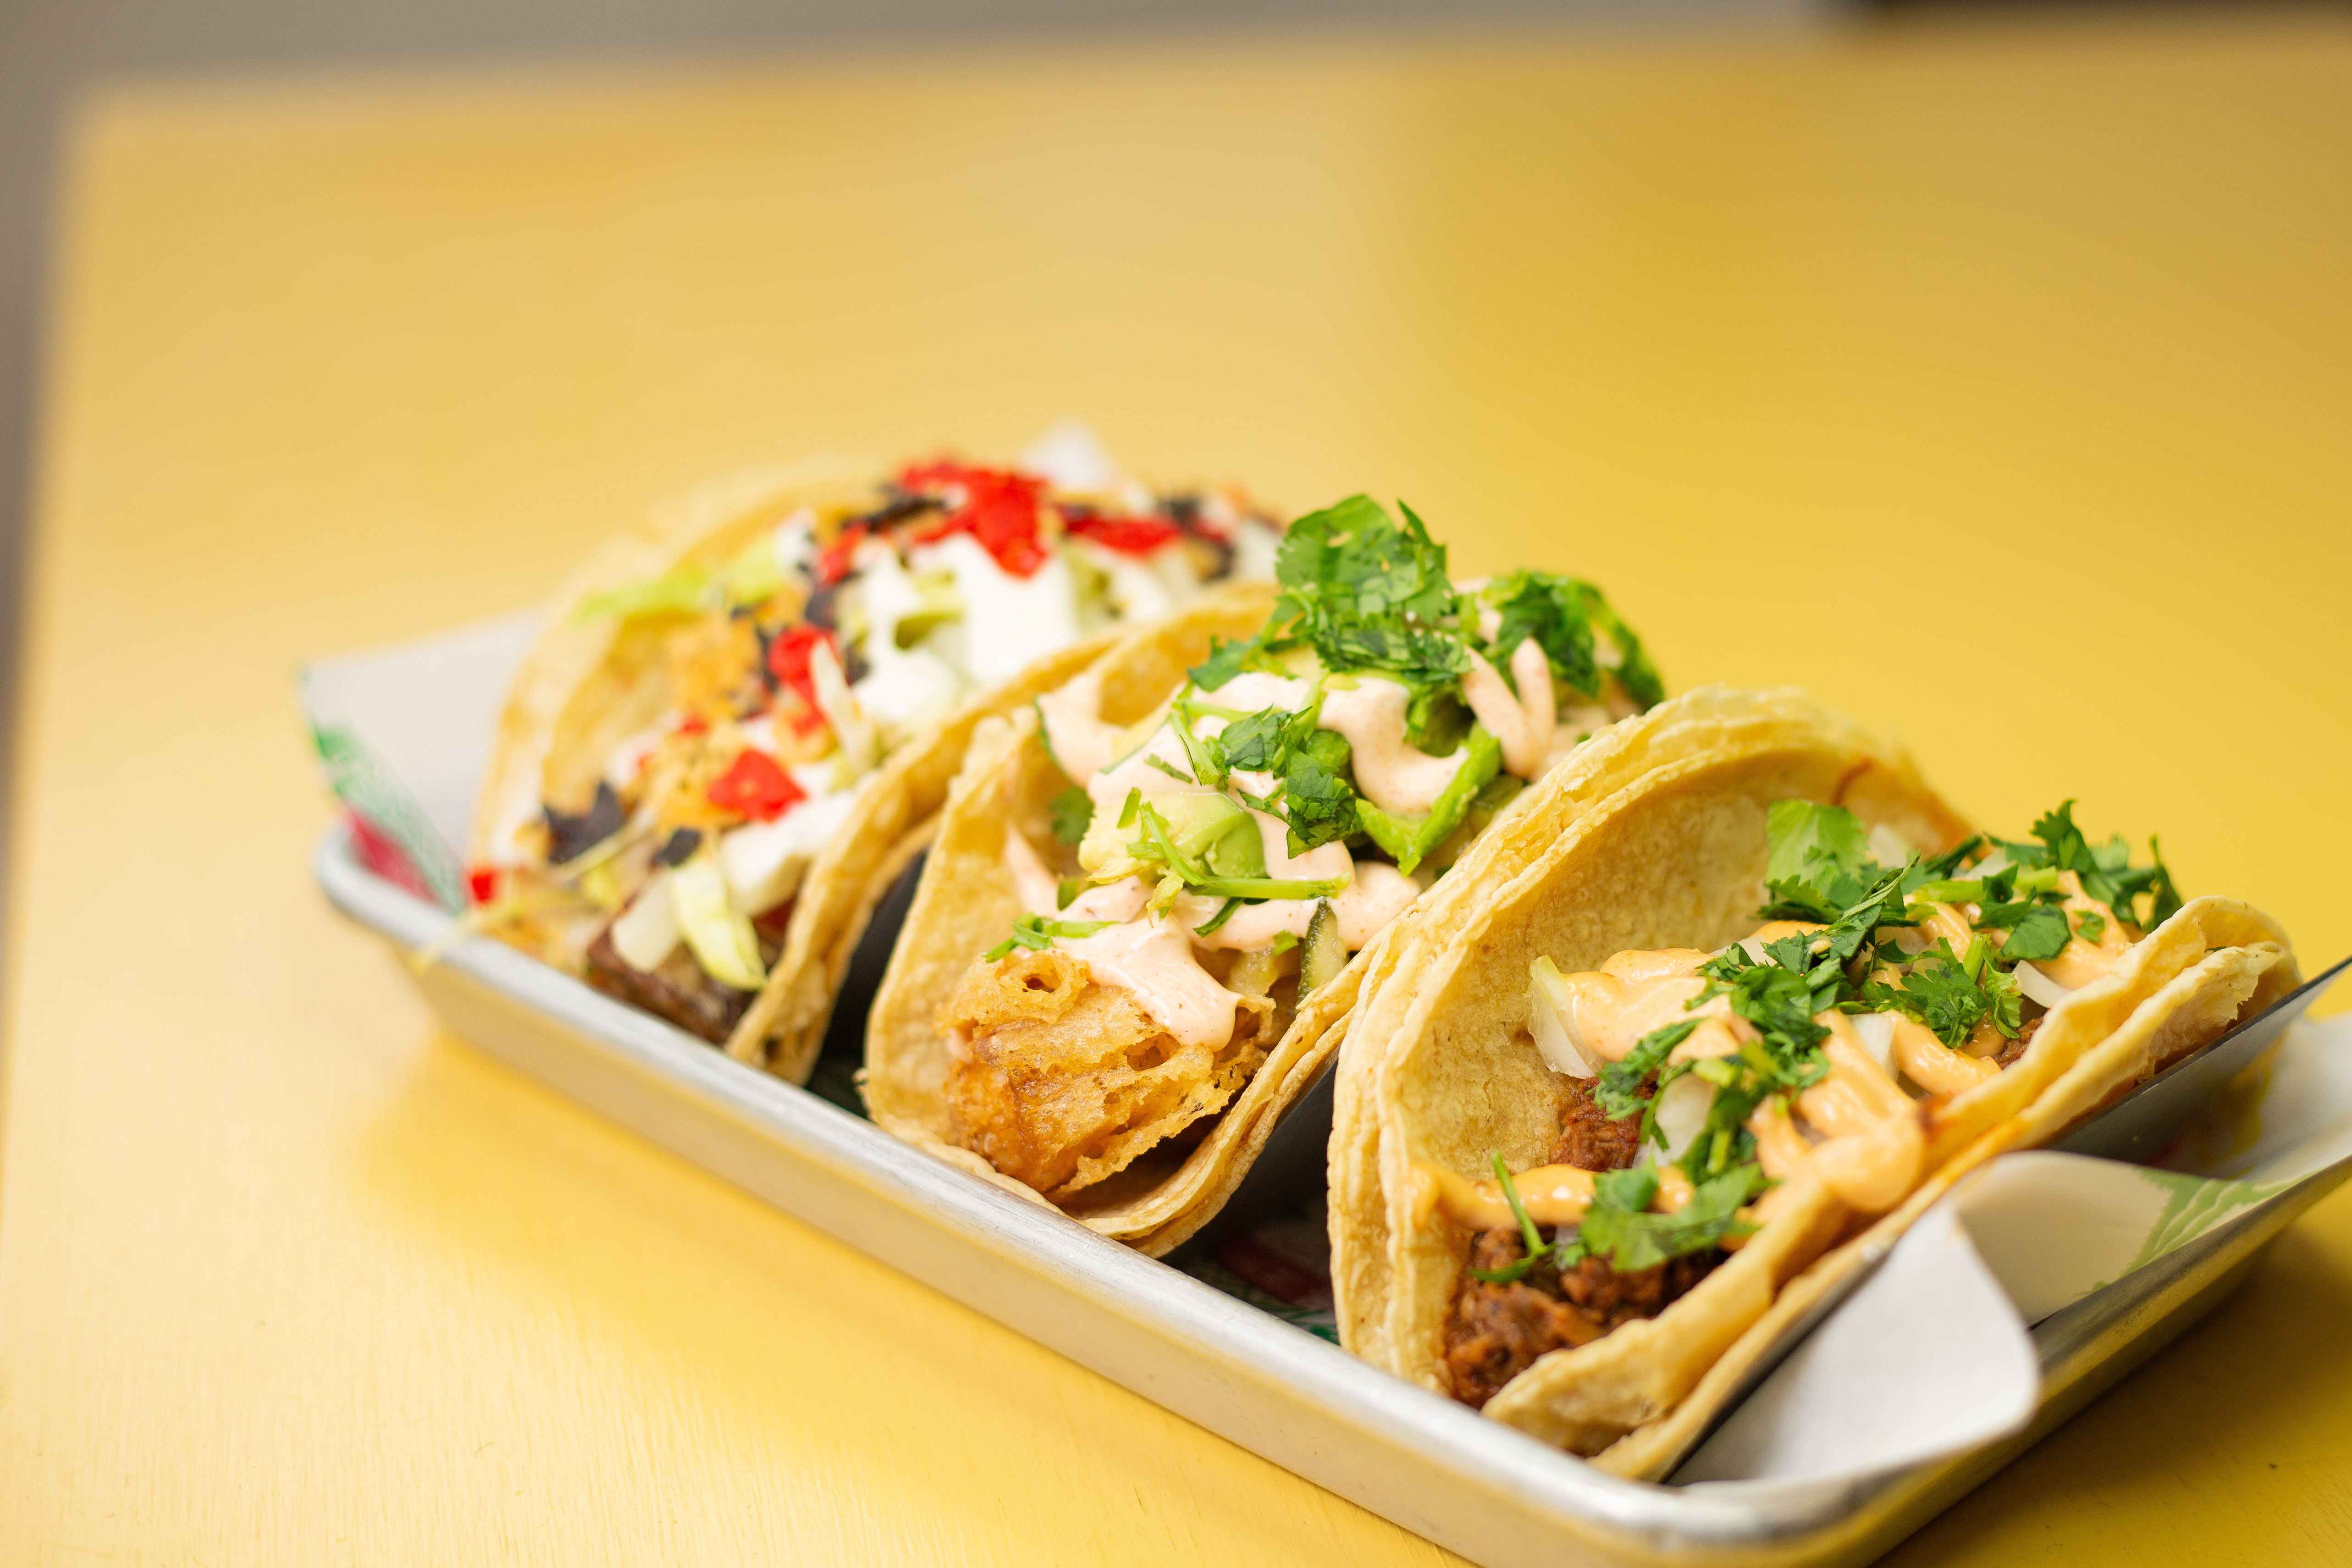 Tacos from The Grand Cantina in Windsor, Ontario.